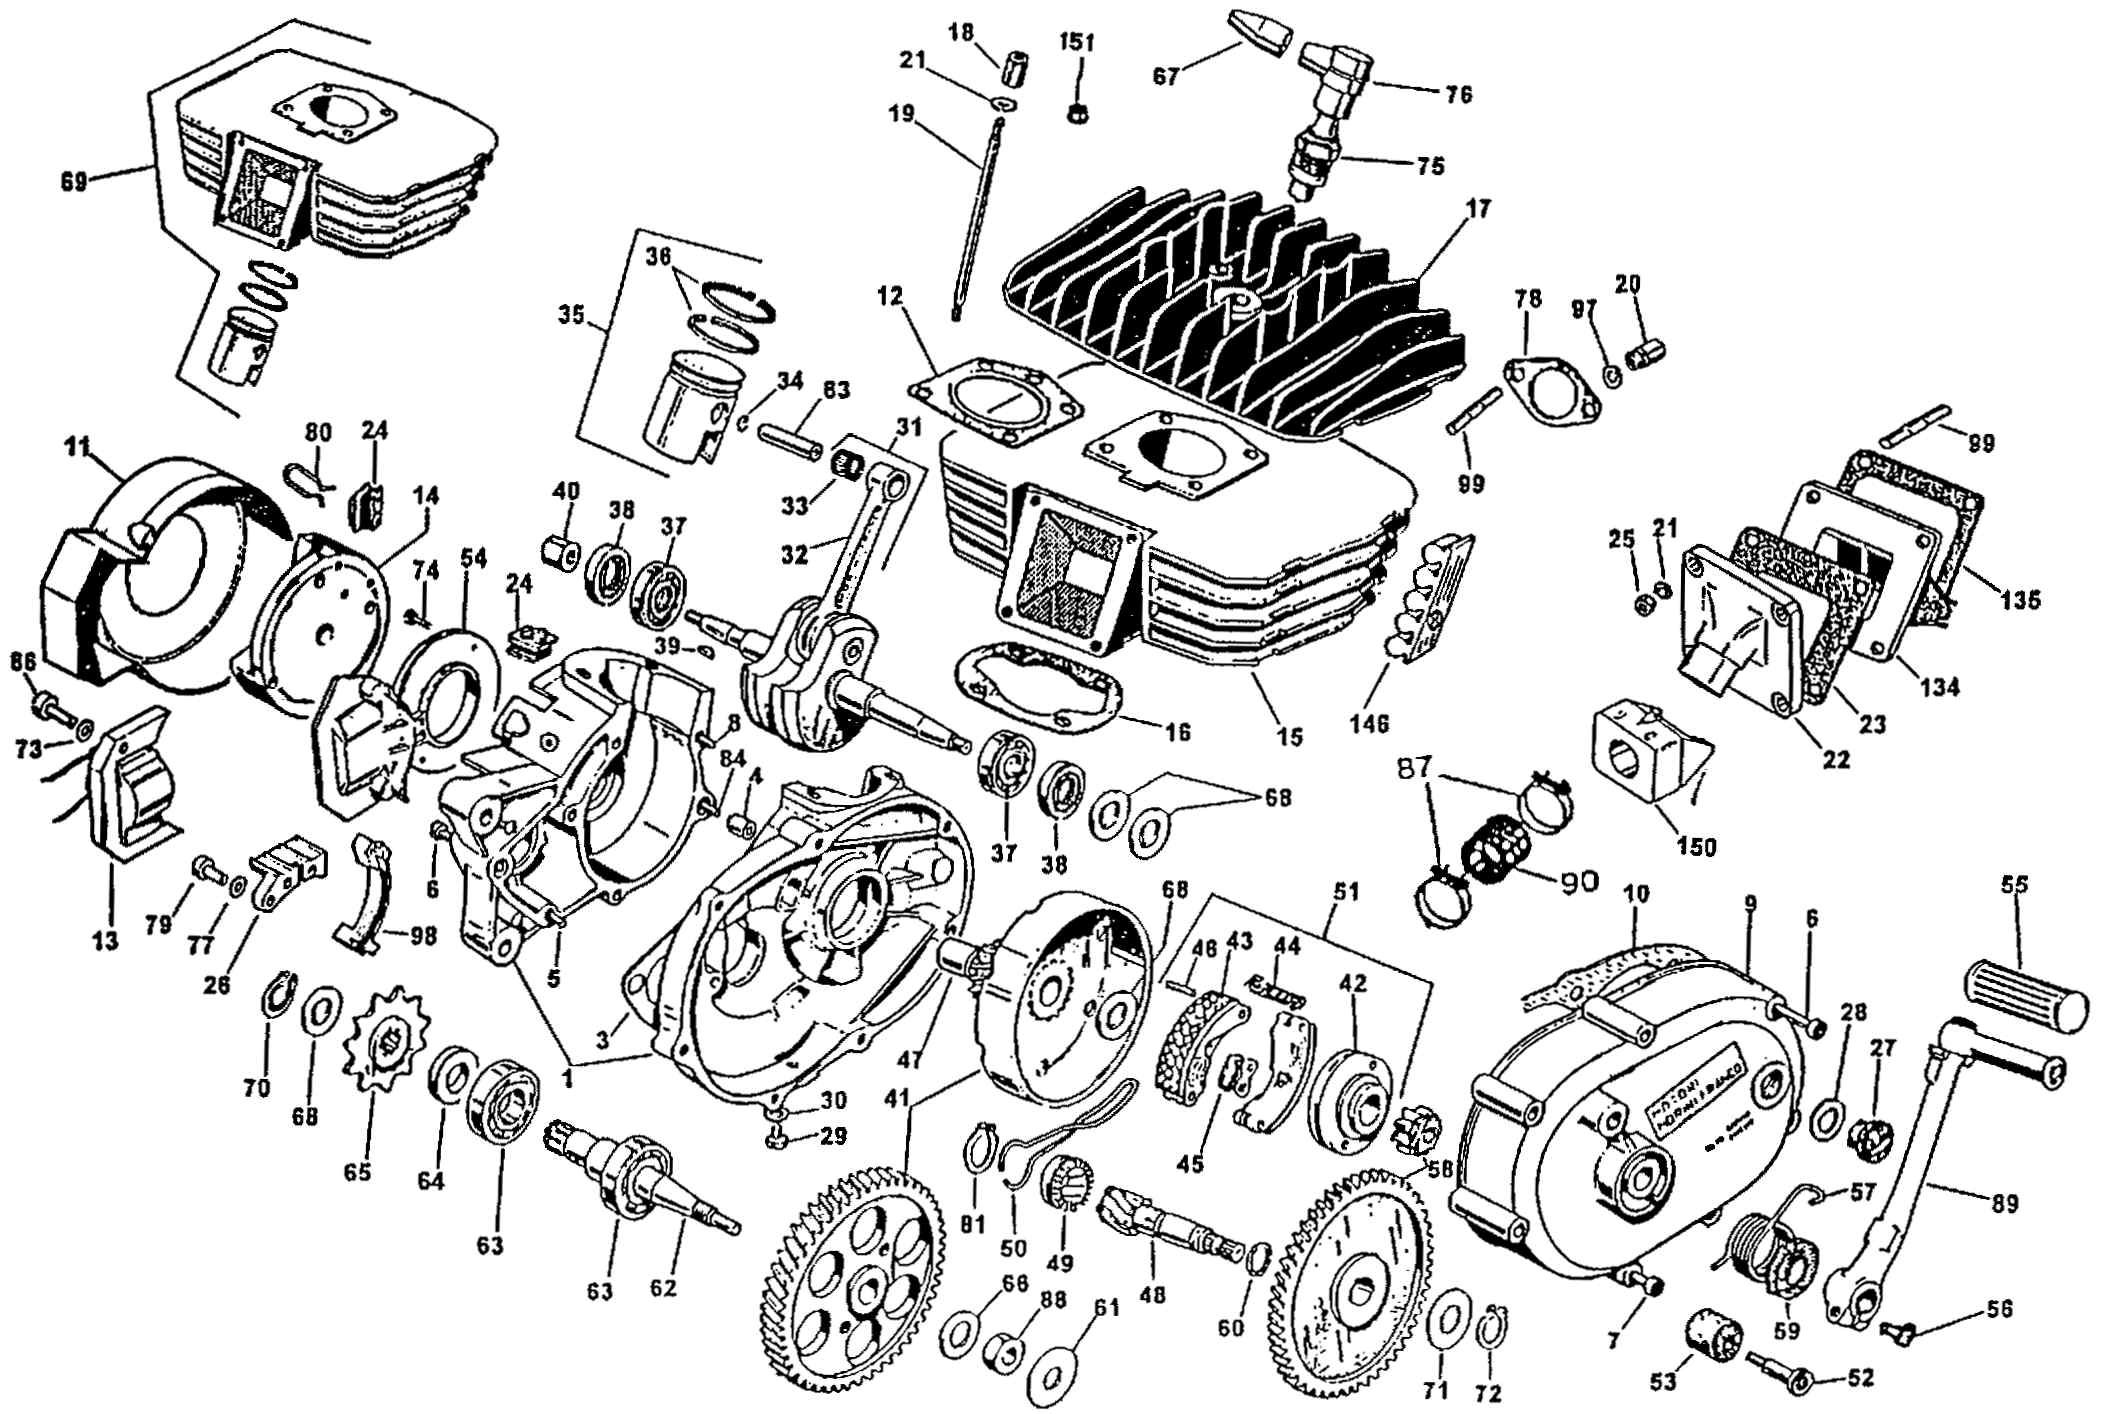 medium resolution of car mechanical drawings technical illustration technical drawings car engine motorcycle engine exploded